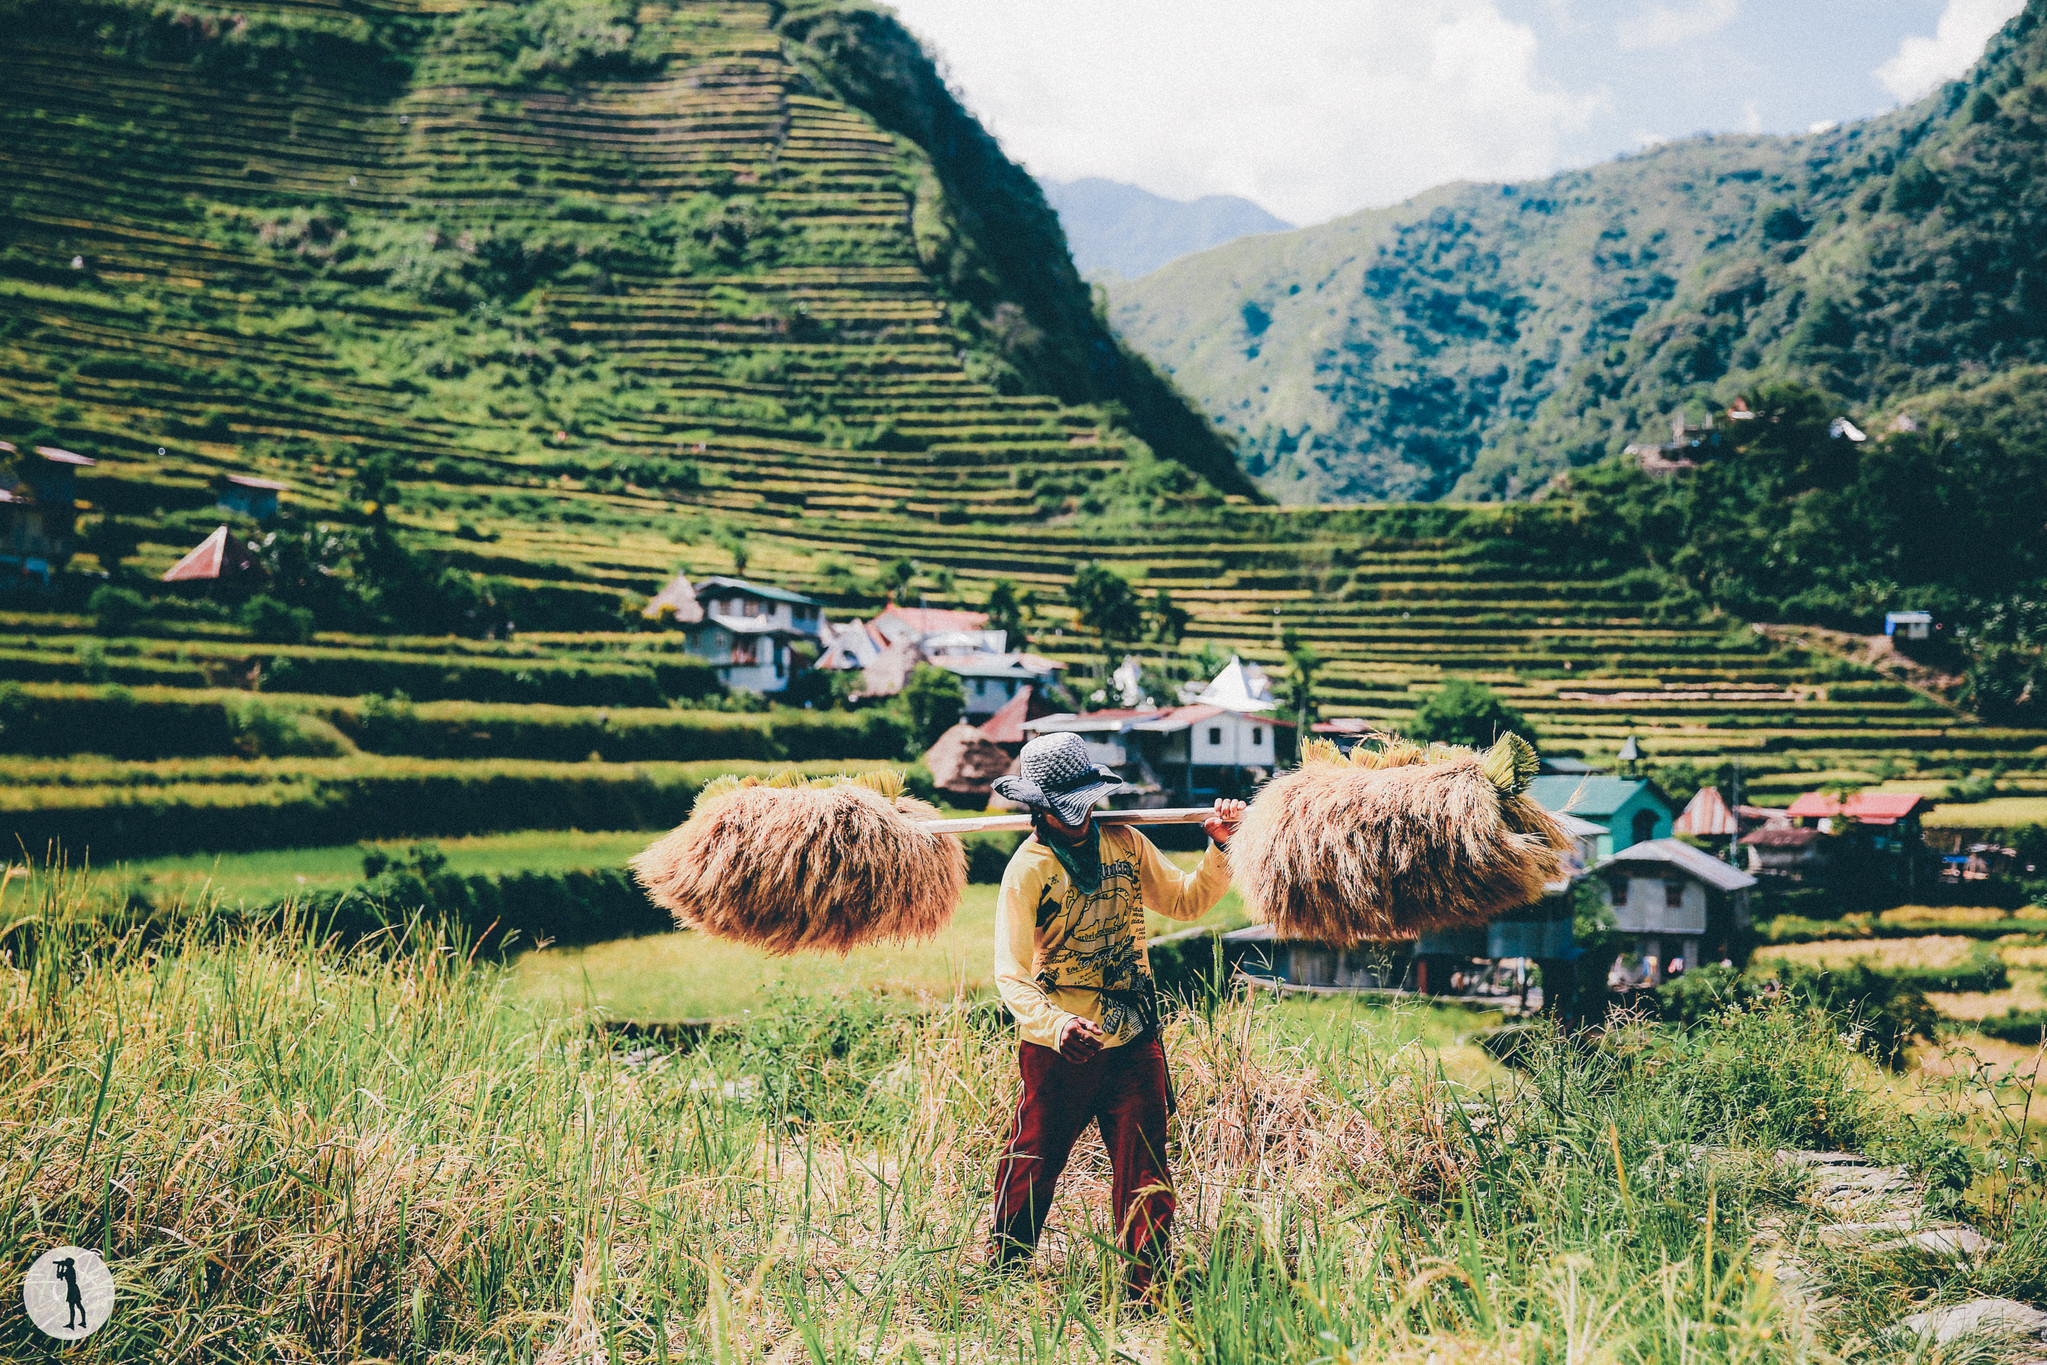 Travel to the Philippines - Batad